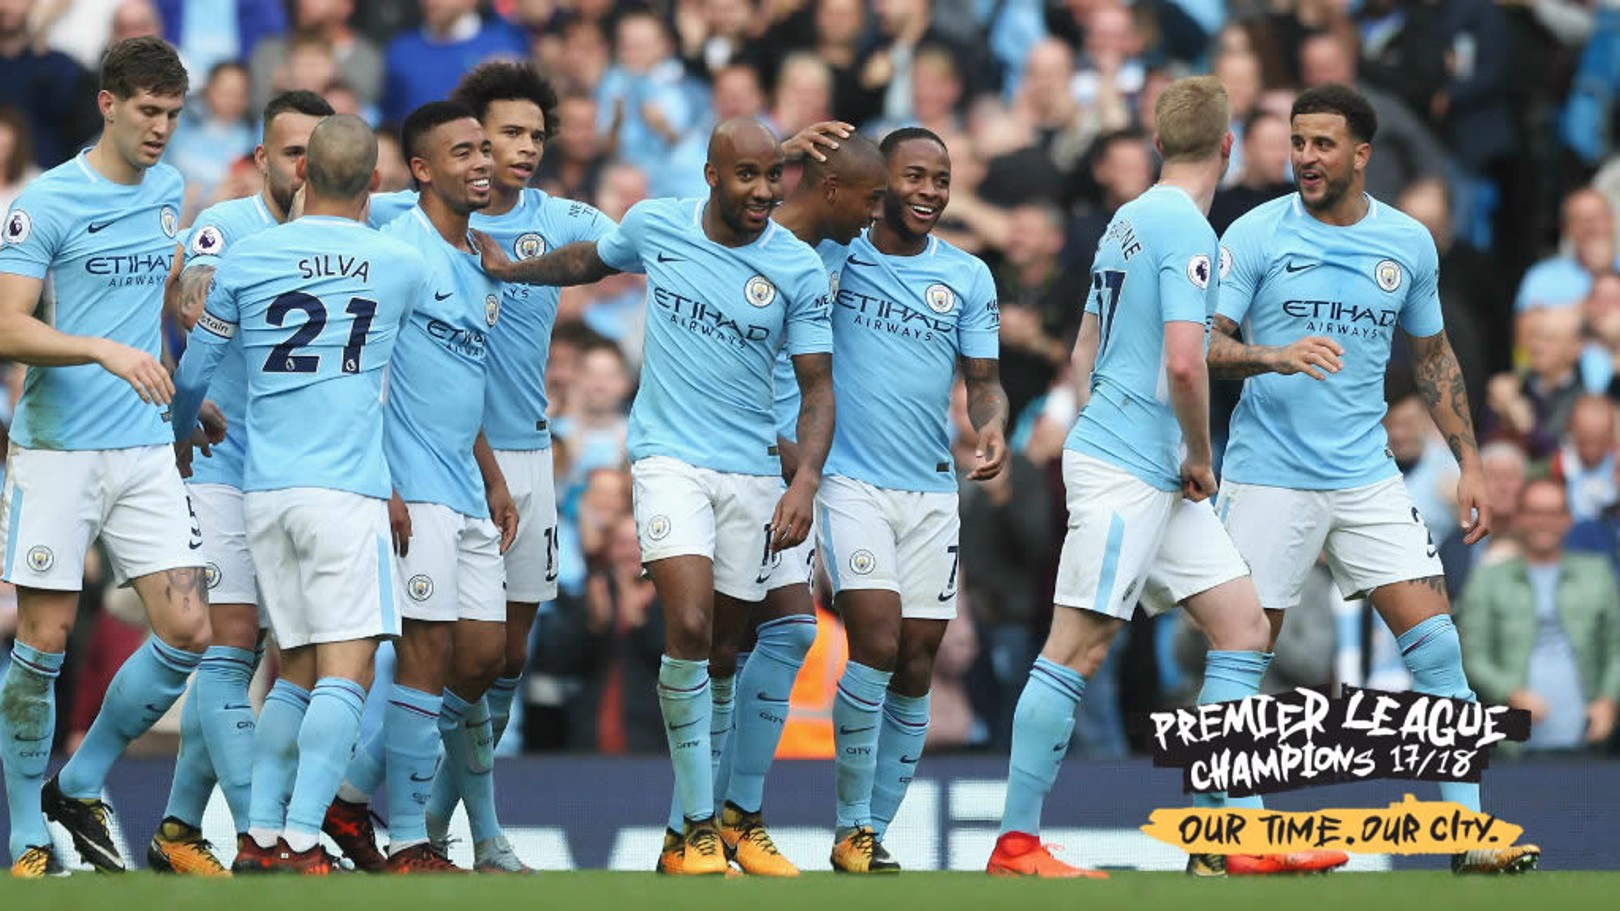 JOB DONE! City are champions